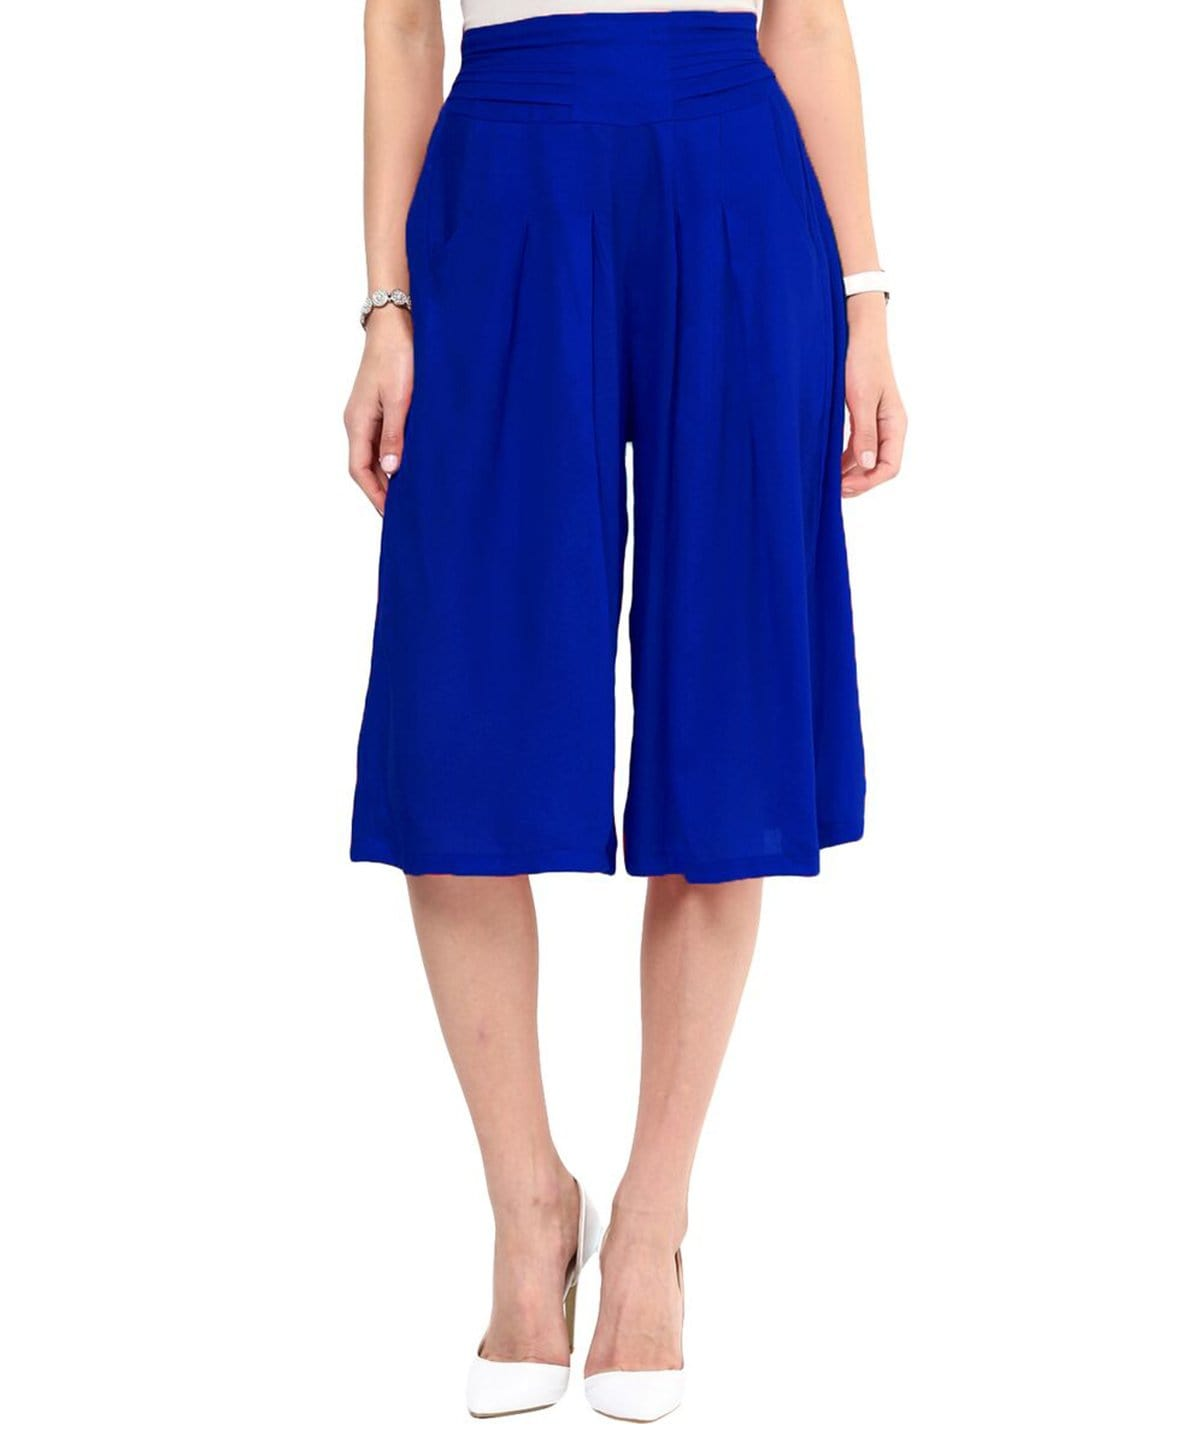 Blue Rayon Adjustable Culottes - Uptownie